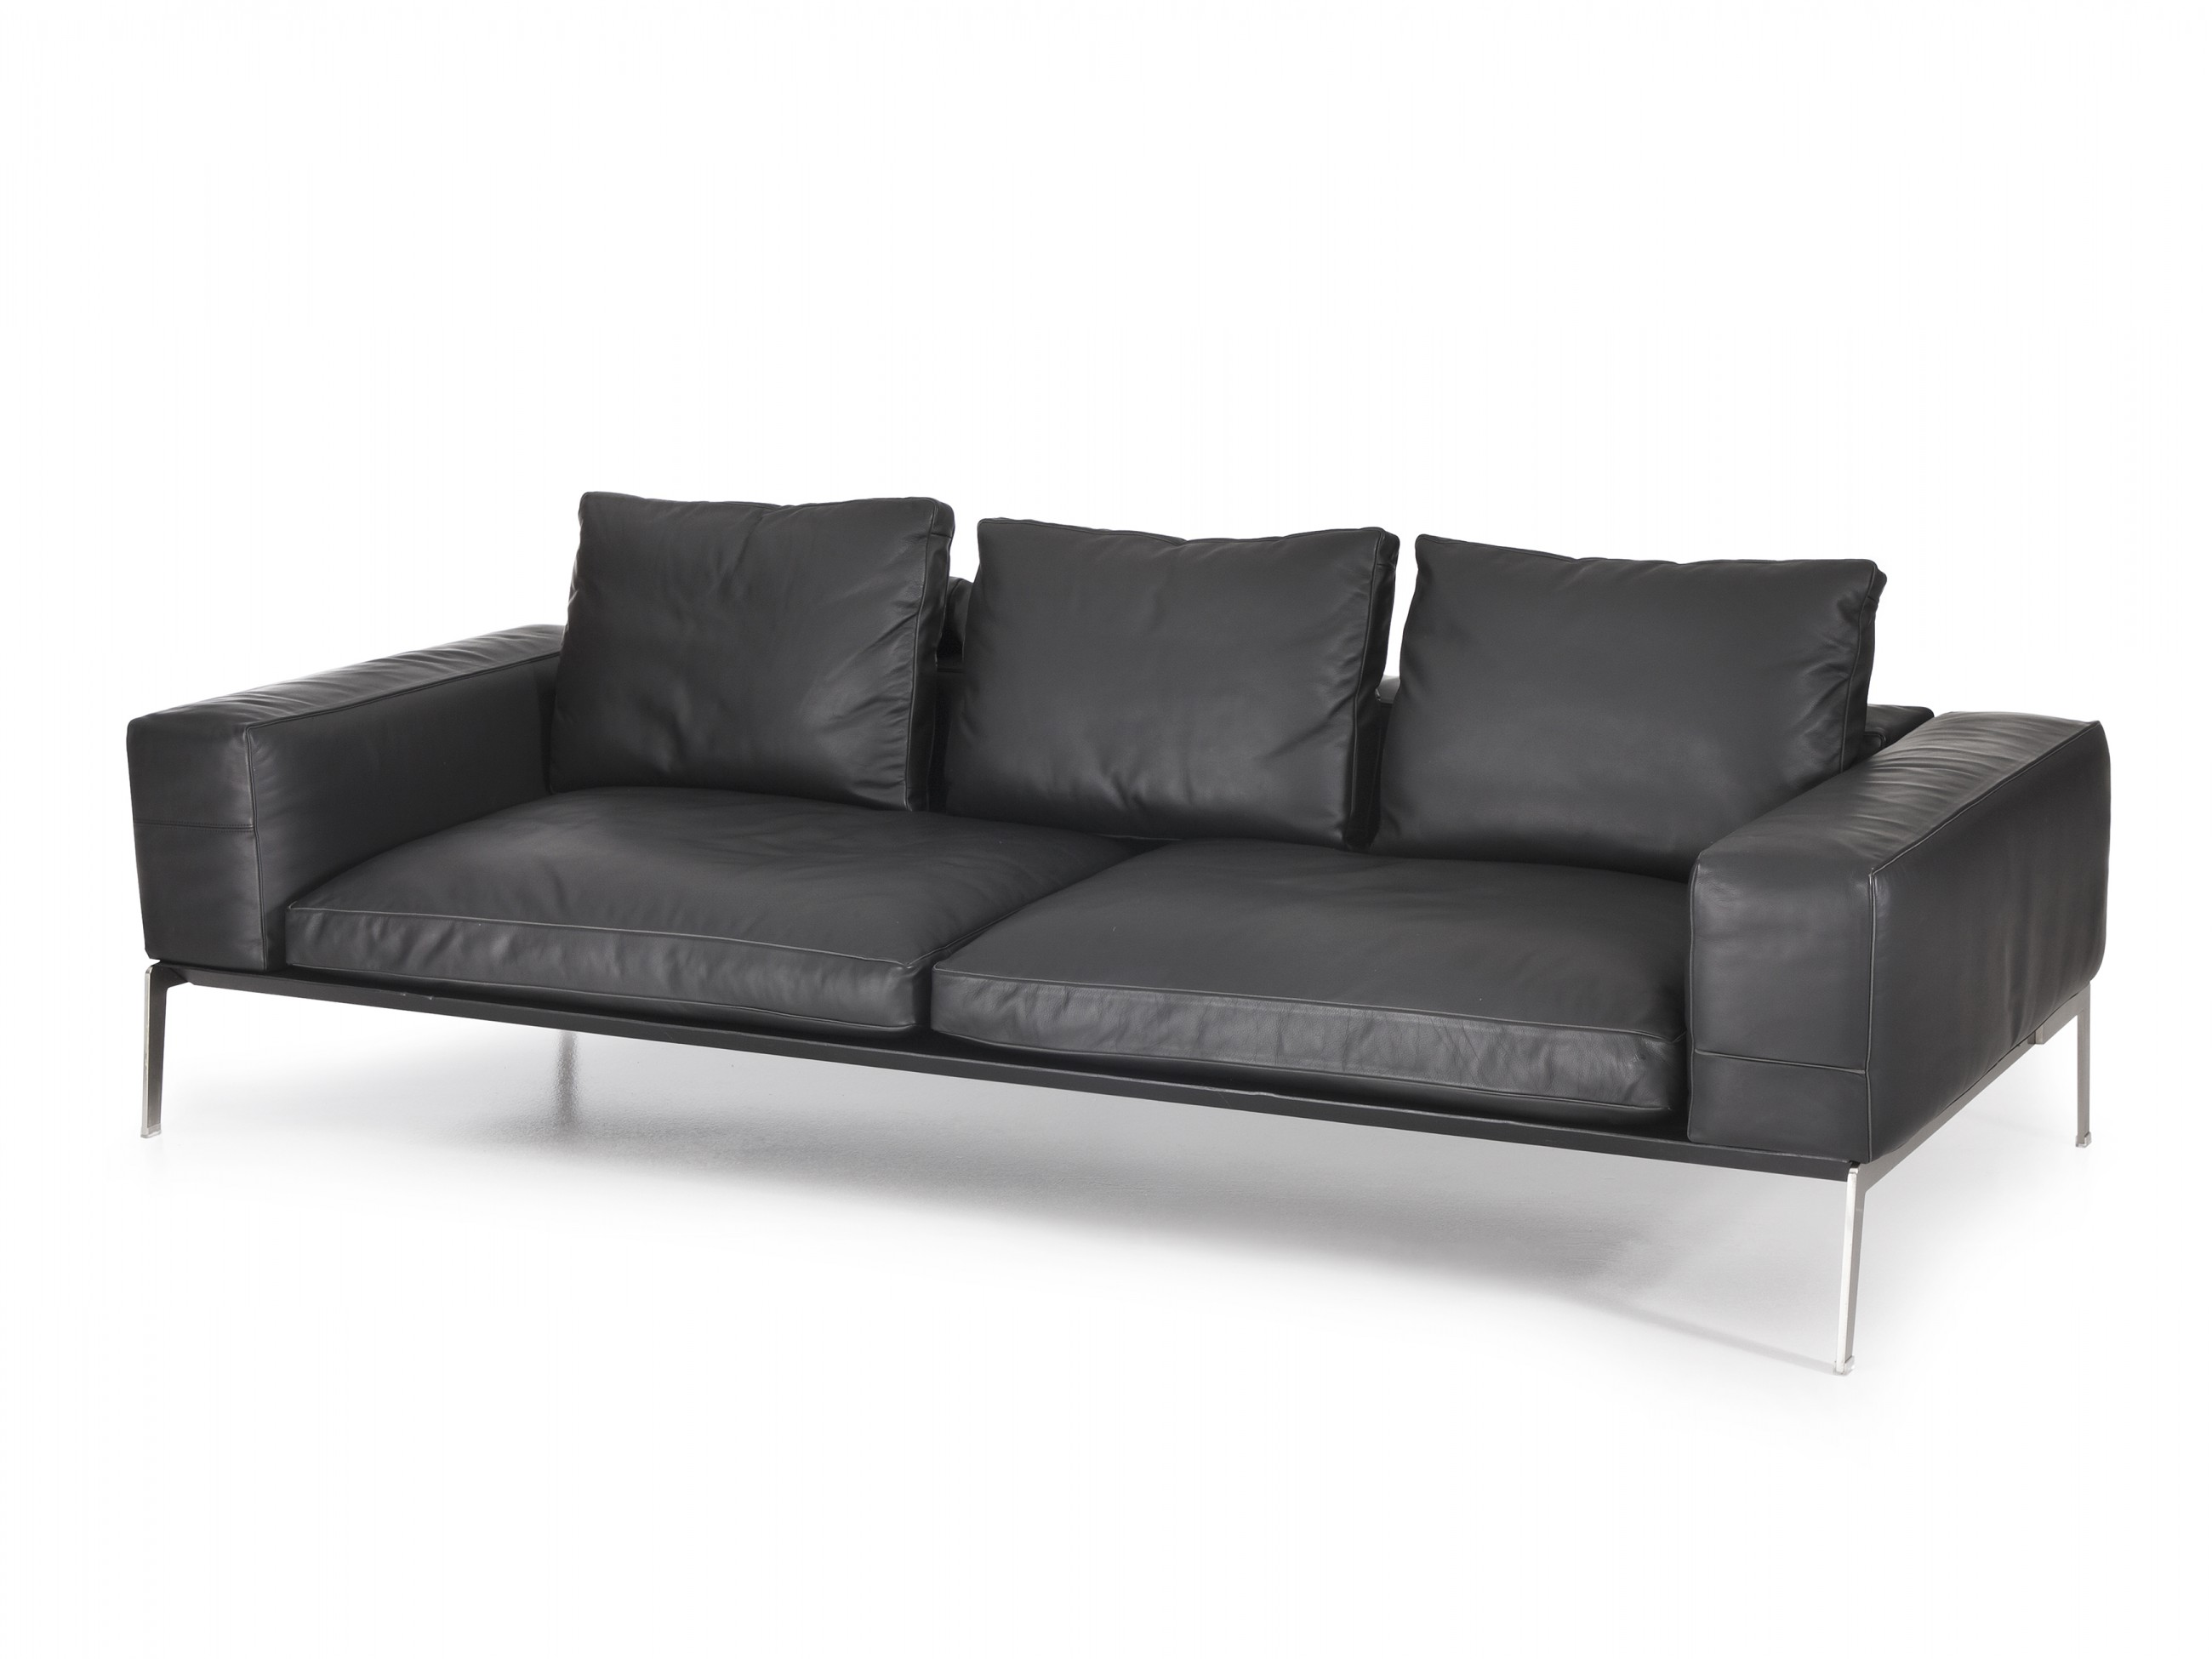 flexform lifesteel sofa hammer auktionen z rich. Black Bedroom Furniture Sets. Home Design Ideas